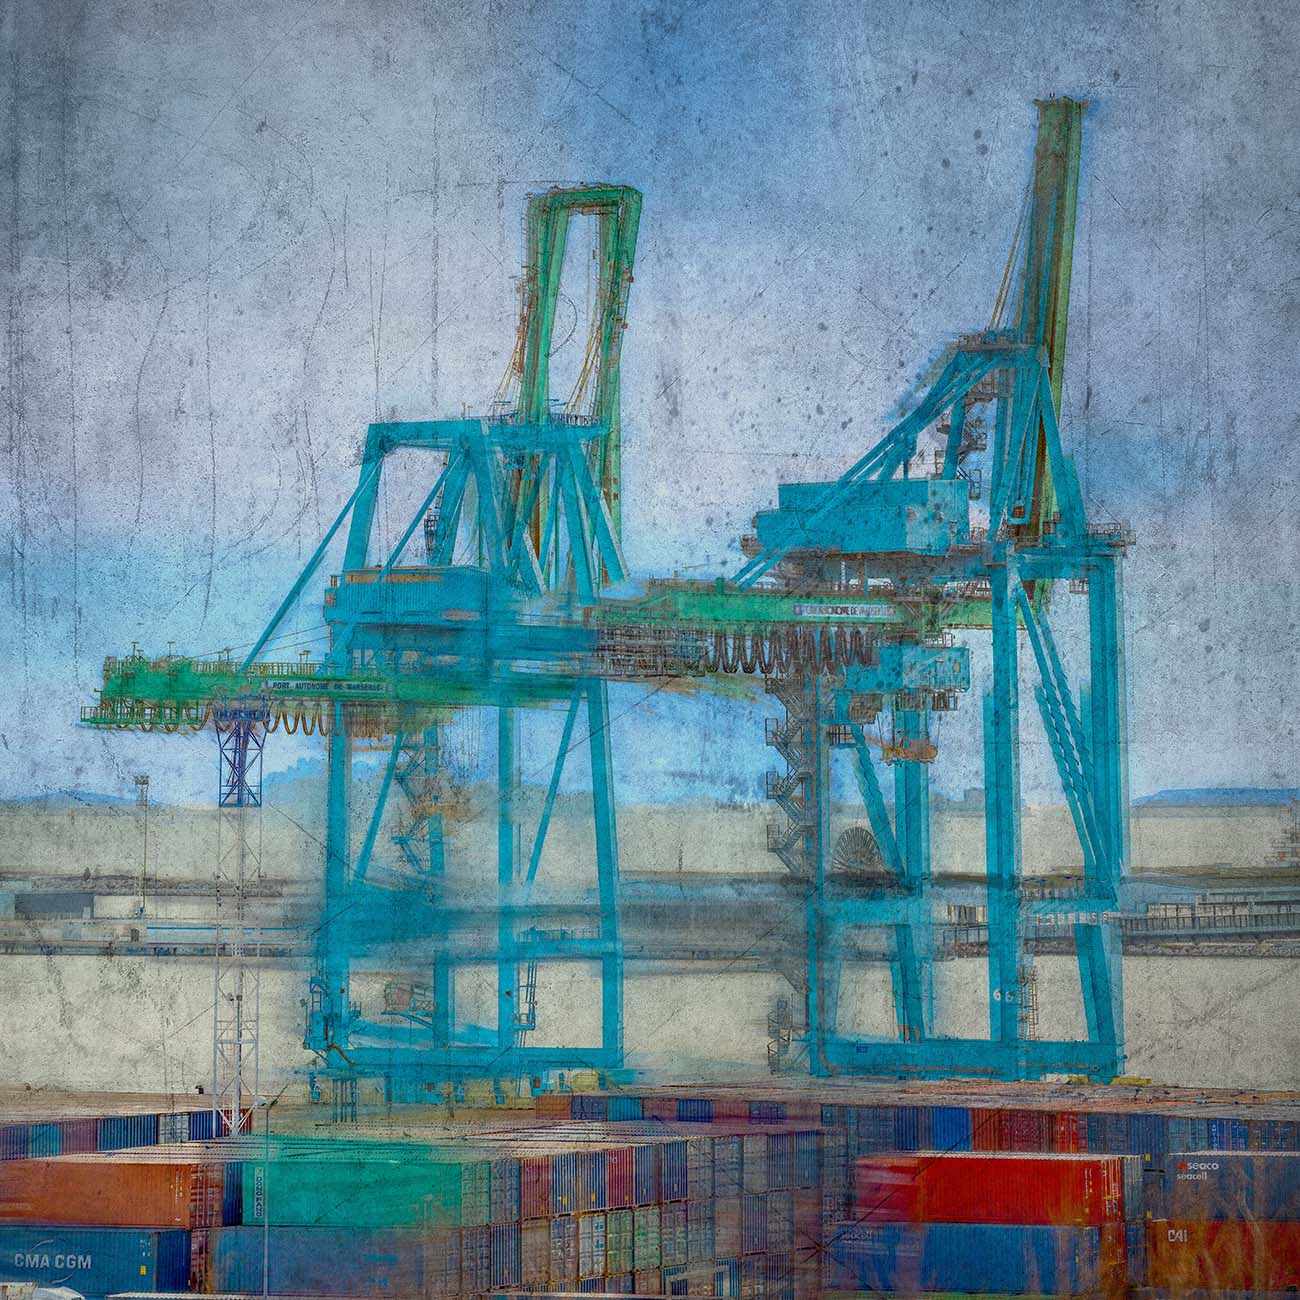 Les grues Bleu Port autonome Marseille Photographe Paul-Louis LEGER